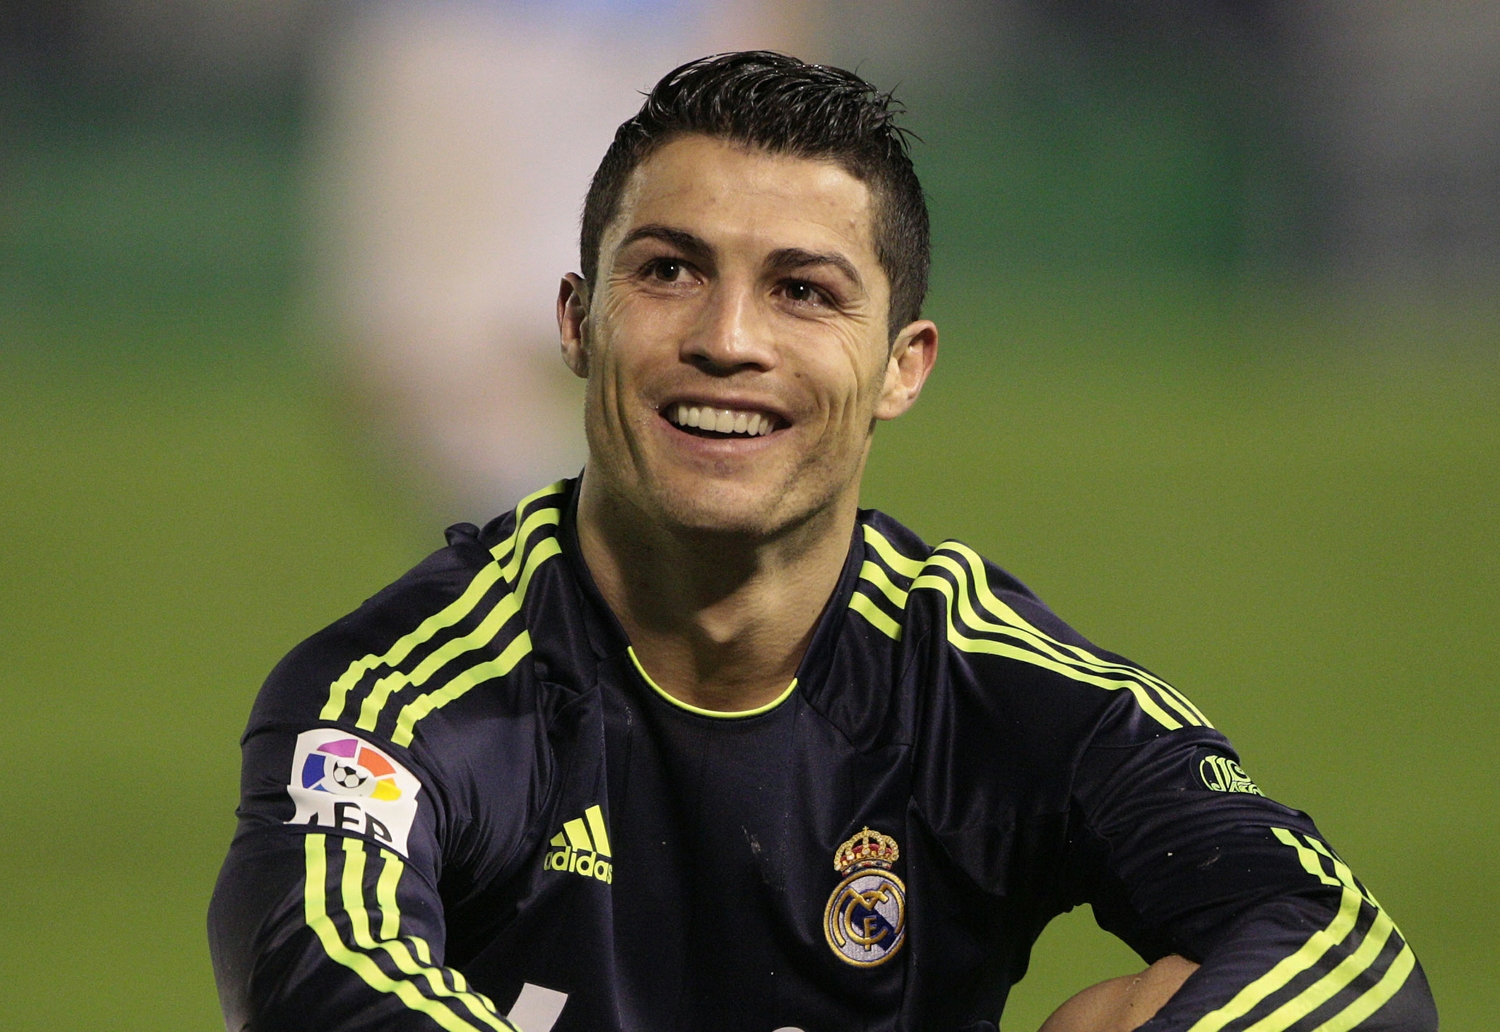 cristiano ronaldo richest football player in the world